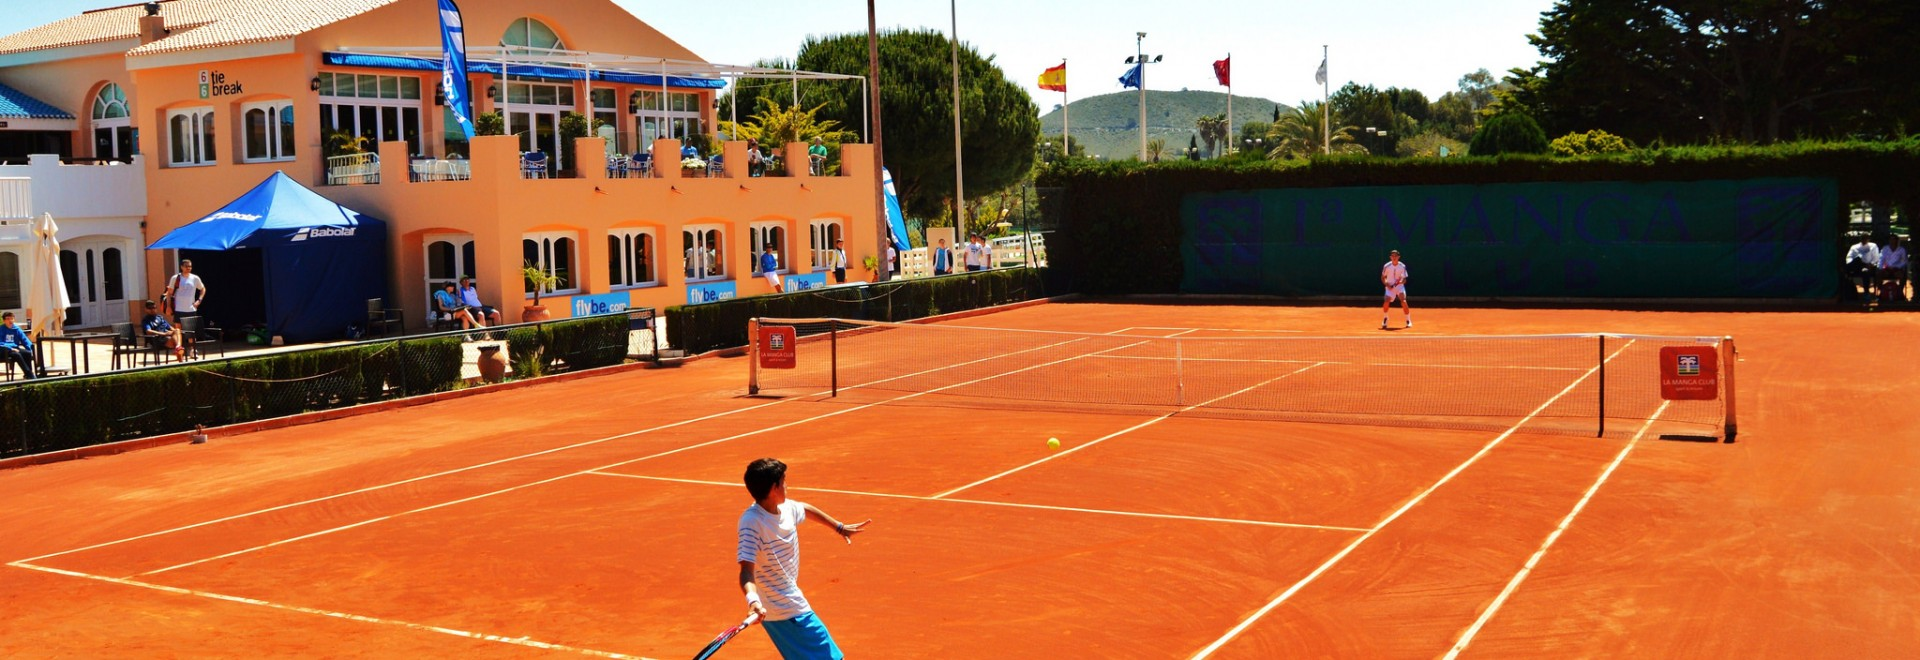 5-Day Junior Tennis Academy - La Manga Club, Murcia